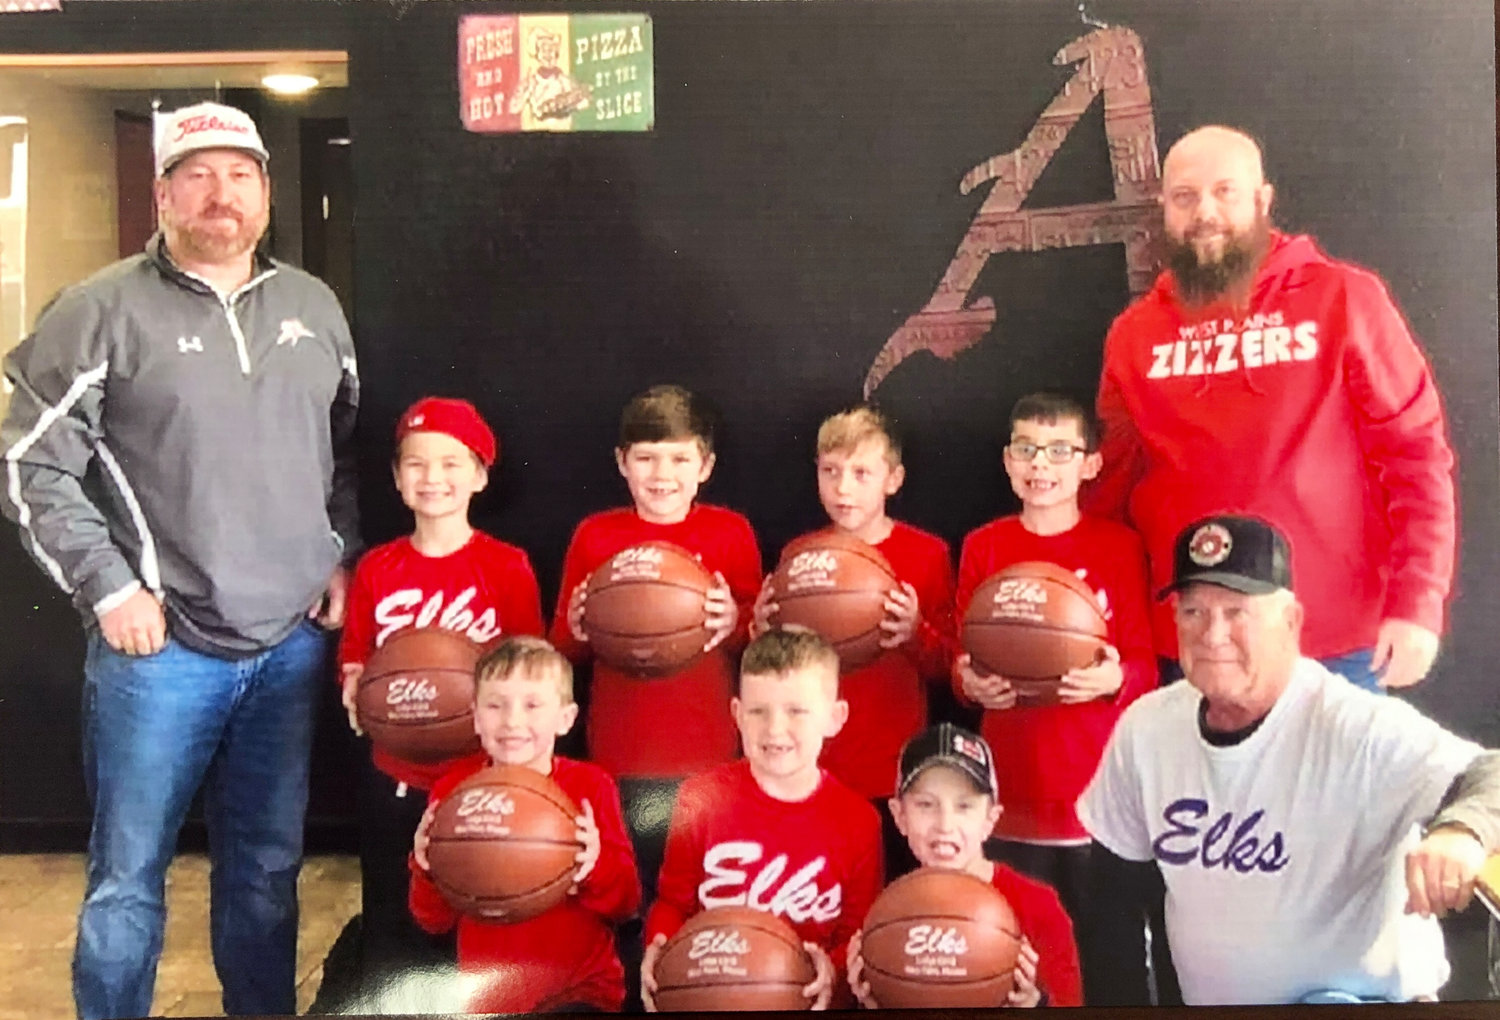 THE WEST PLAINS Elks Lodge 2418 Past Exalted Rulers Association recently sponsored a pizza party for the West Plains Shooter basketball team at Pizza Shack where they presented each player with a new basketball. The party was to celebrate the team winning the first grade division and being undefeated in the Mtn. View K-1 Leage. Front row, from left: Kreed Gunter, Sawyer Trail, Kasen Brown, and past Exalted Ruler Craig Jordan. Second row: Elk Jason Jordan, Reed Jordan, Cash Tidwell, Judd Hayes, Jarret Renfrow, and Coach Justin Brown.